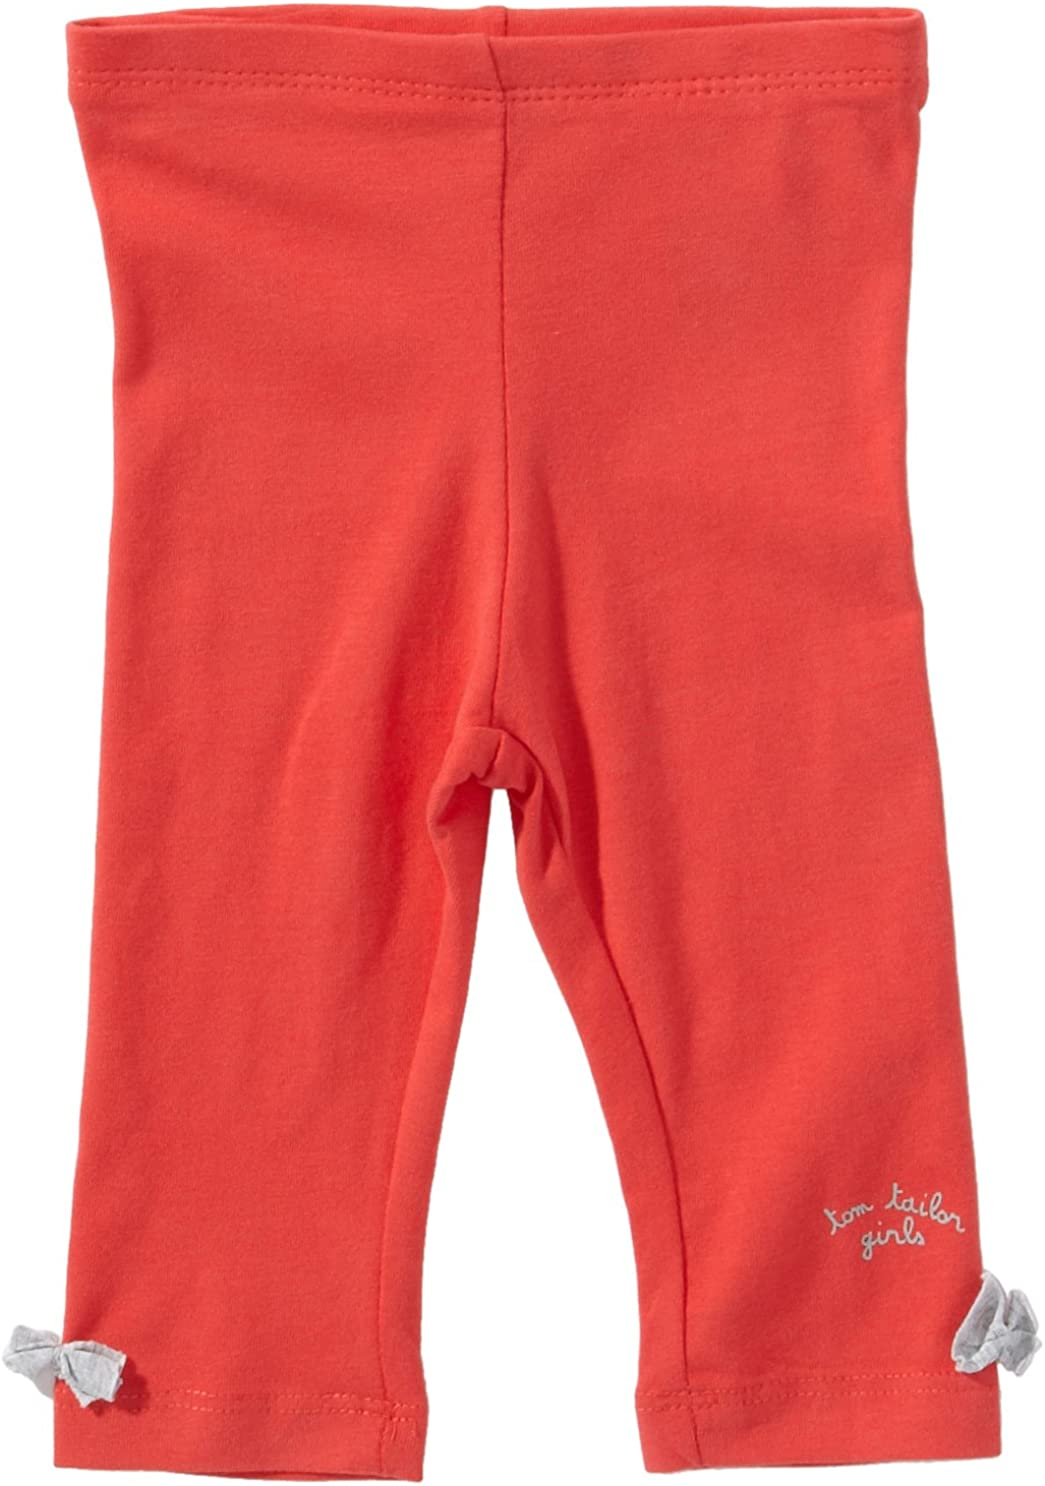 M/ädchen Legging 68001890021//sweet leggins Tom Tailor Kids Baby